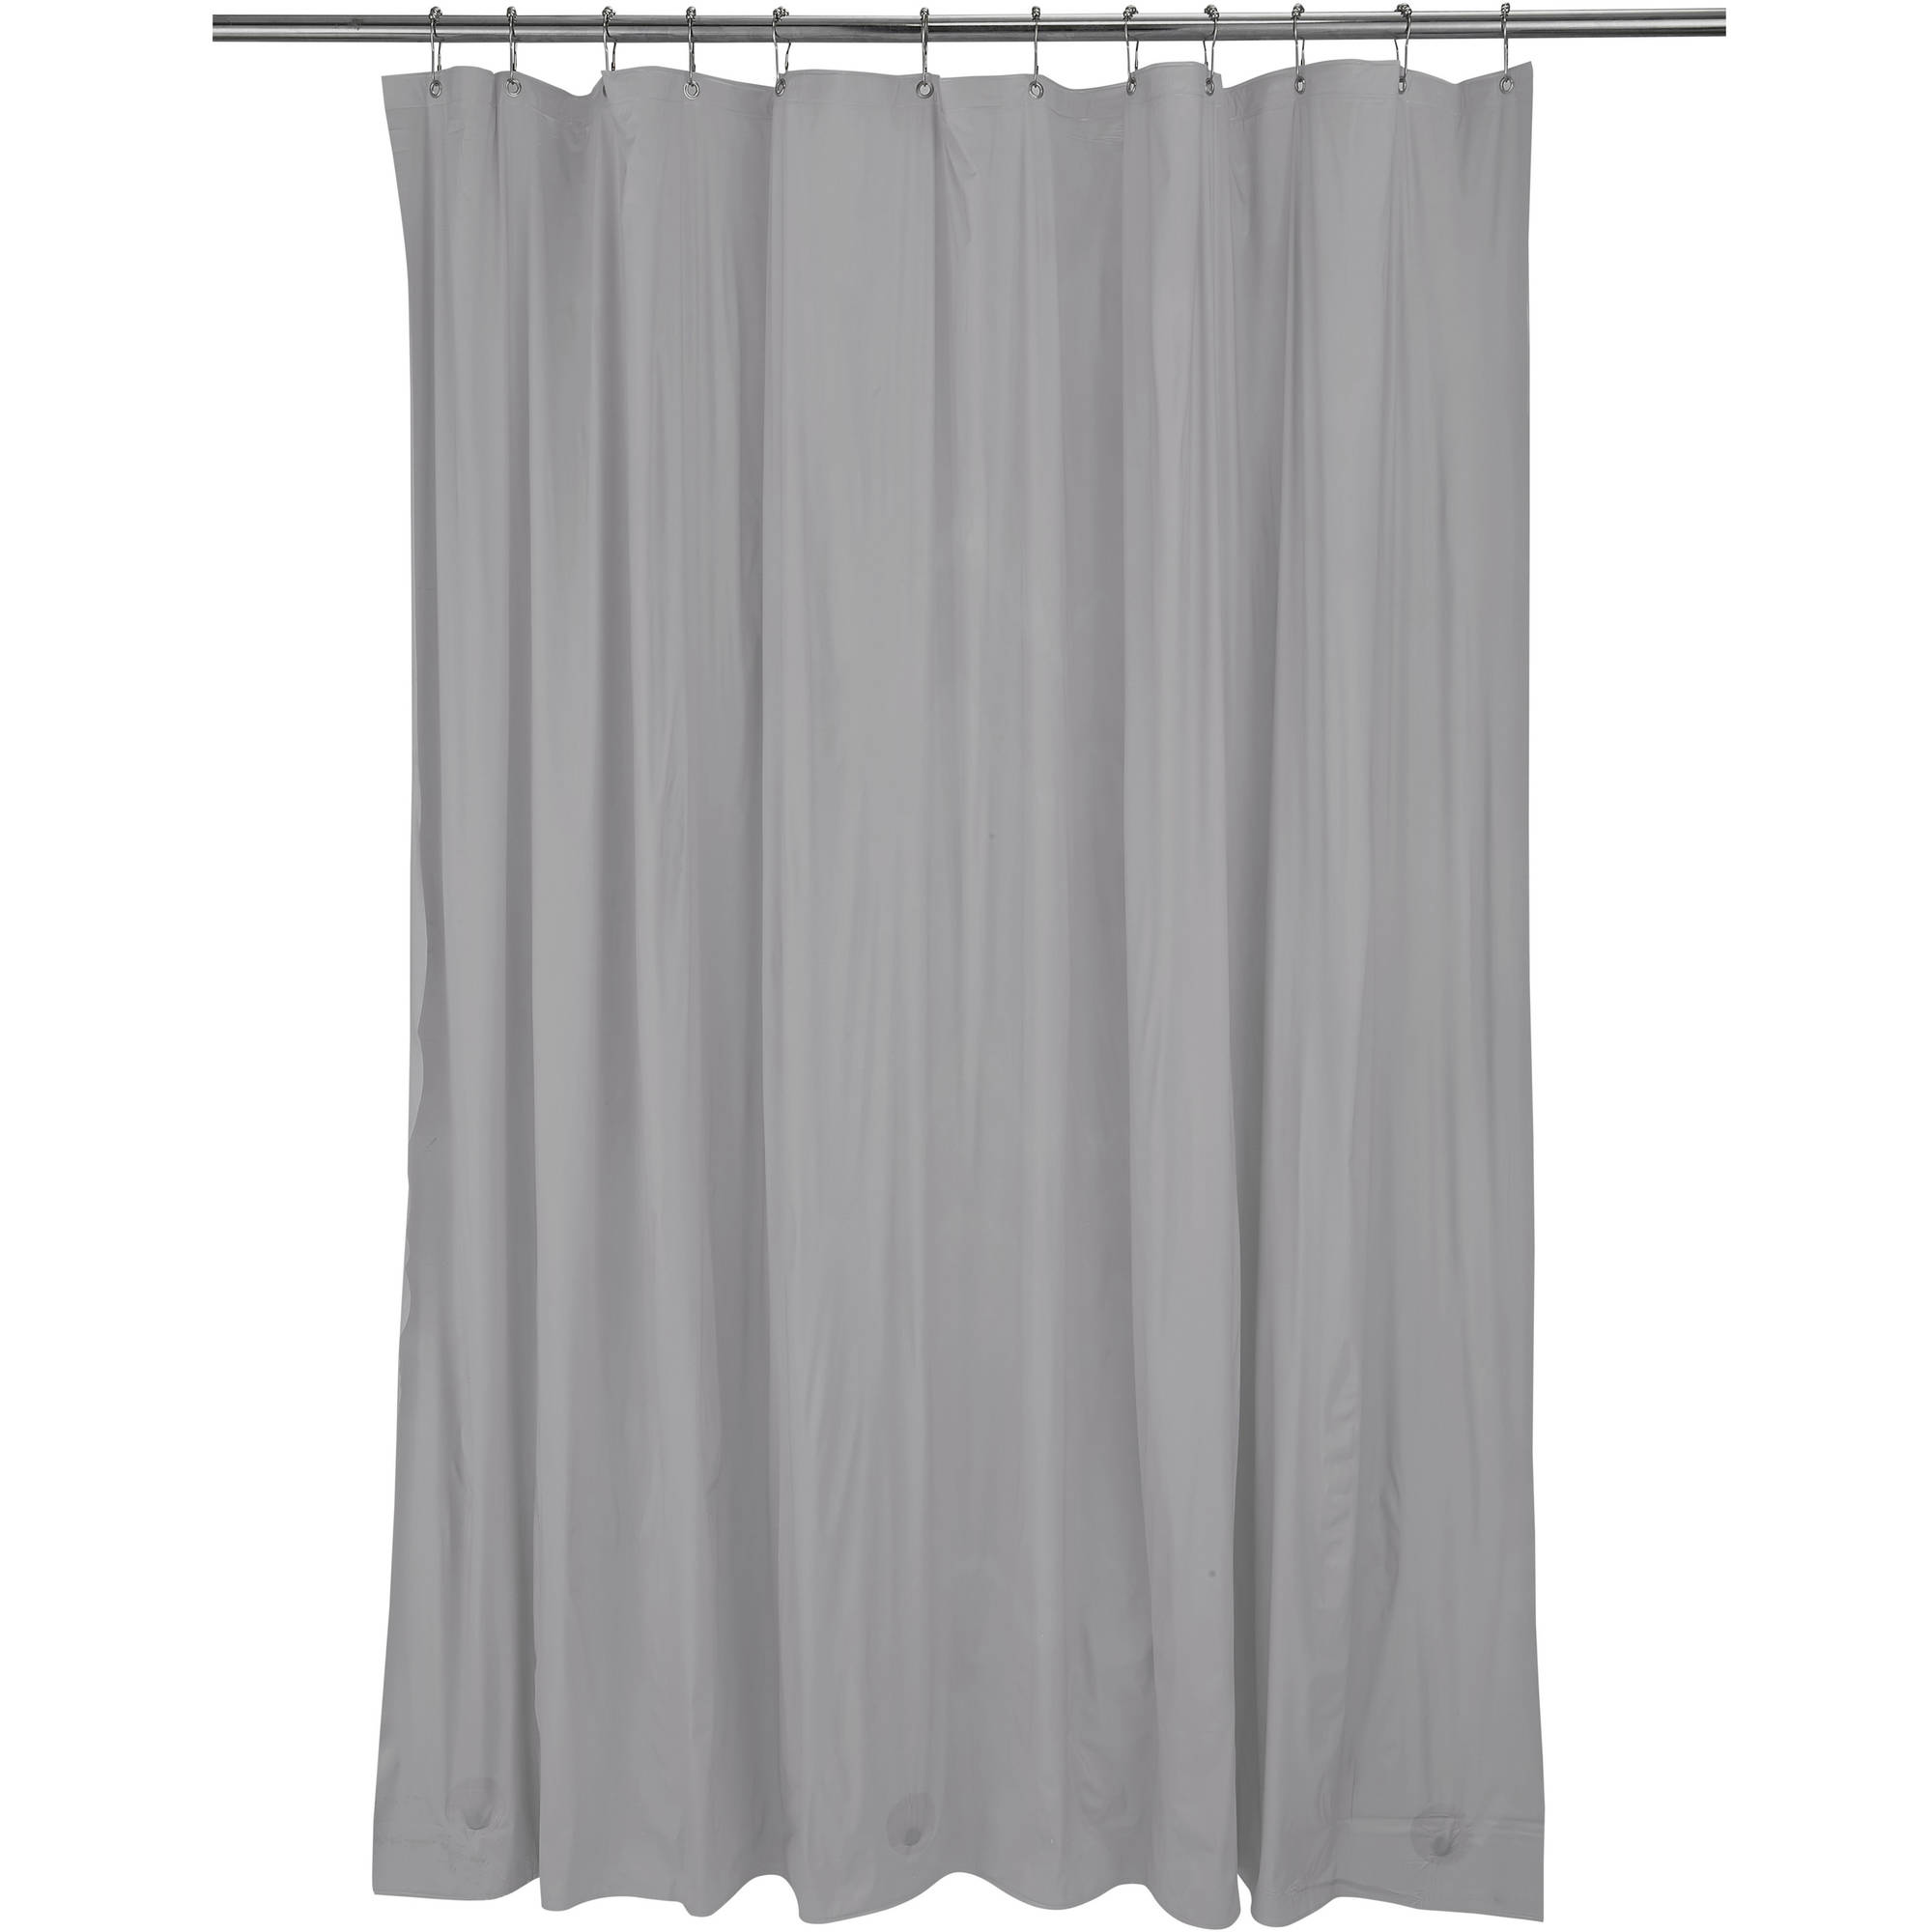 How to Clean A Shower Curtain Liner | Shower Curtain Liner | Clear Shower Curtain Liner